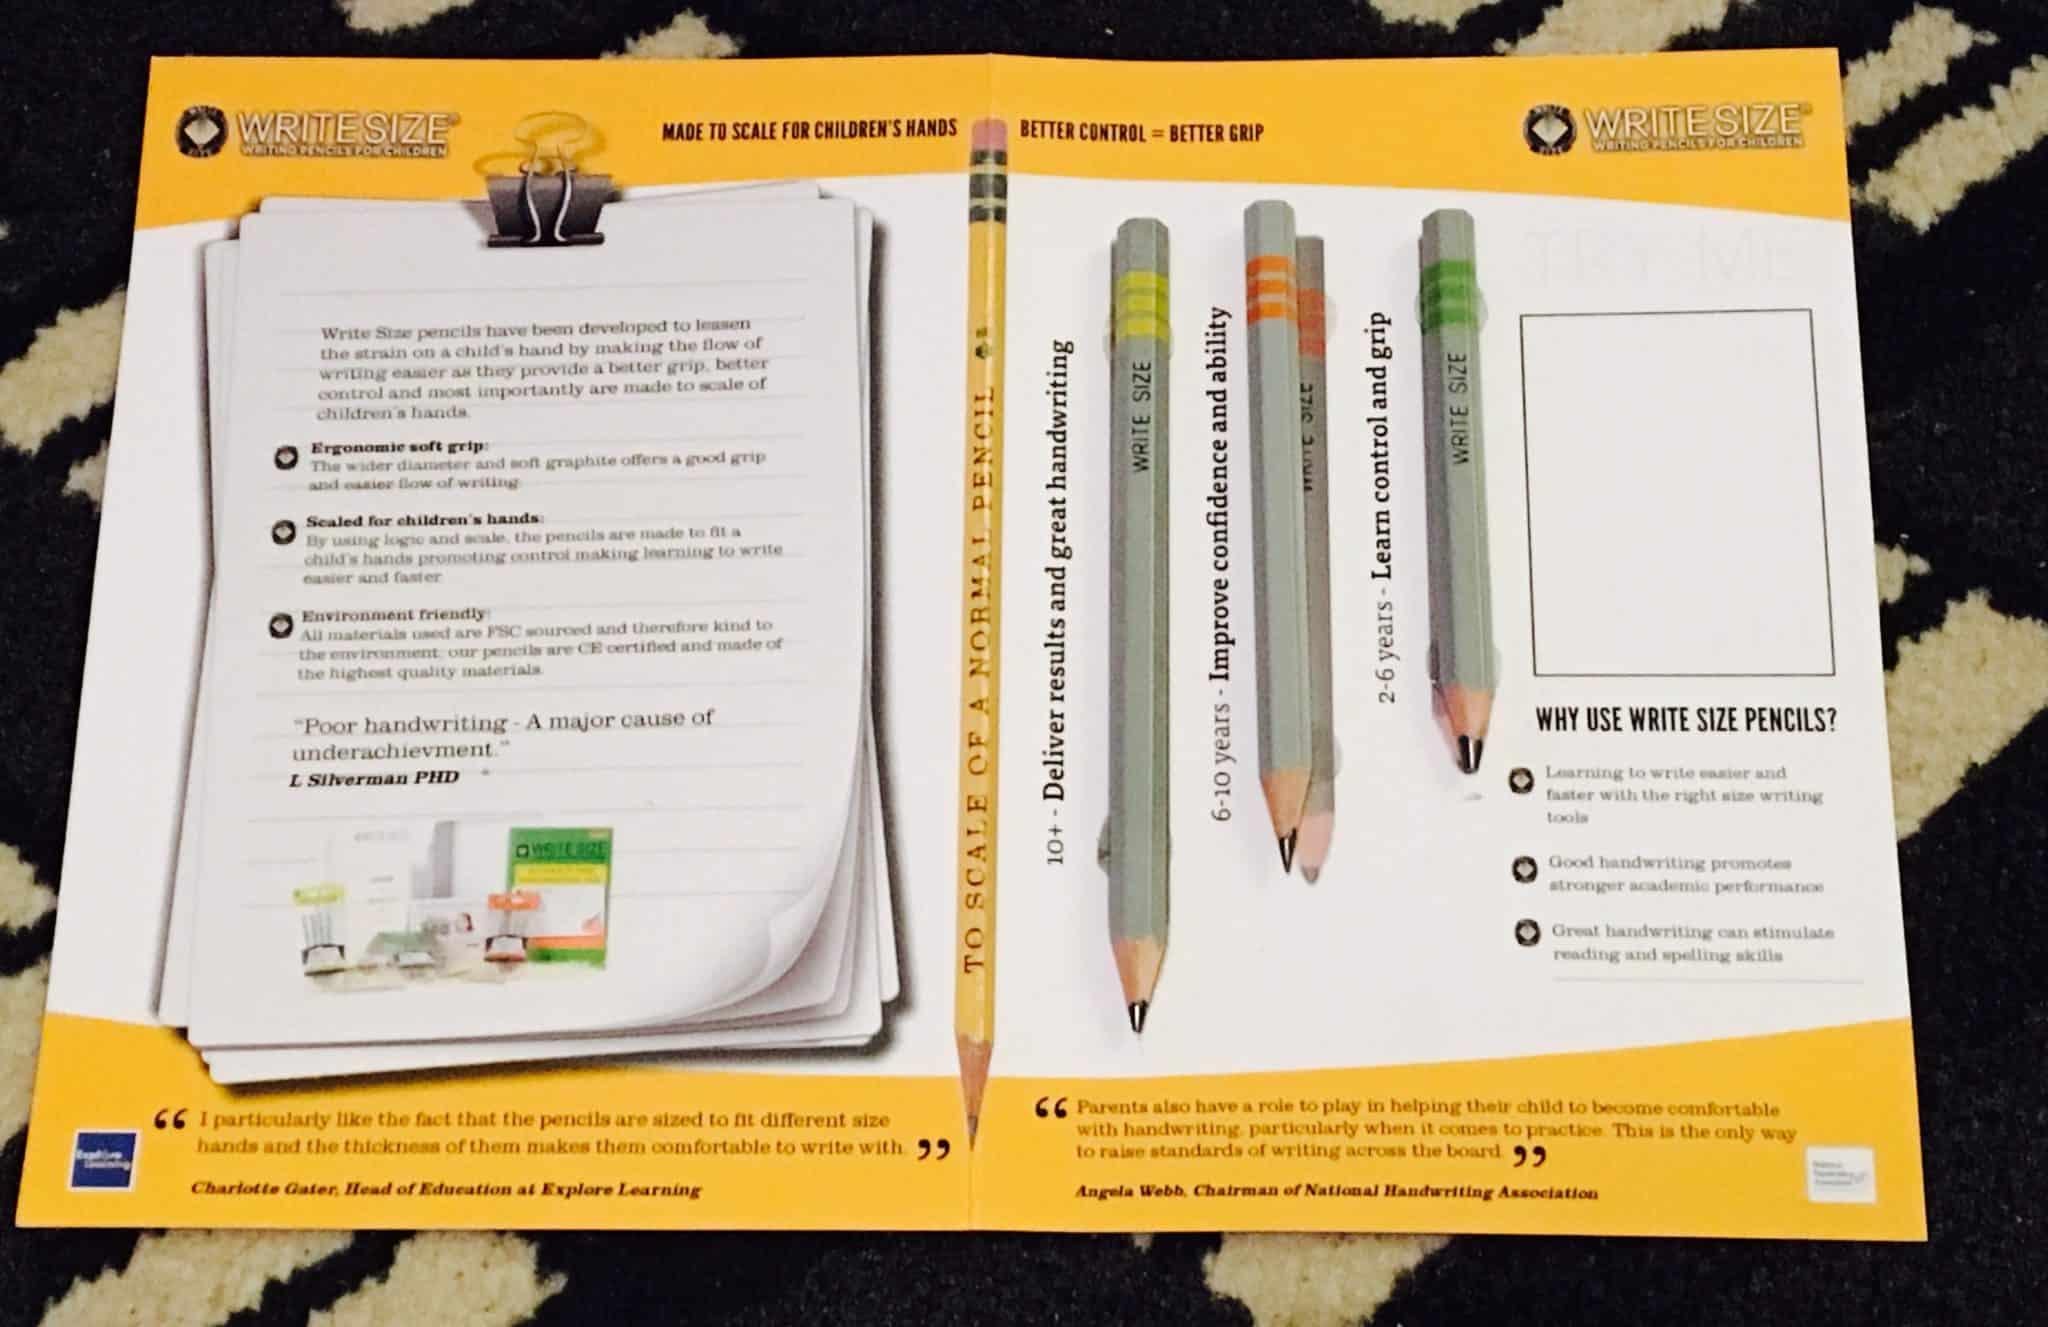 Introducing Write Size Pencils: Made to scale for children's hands